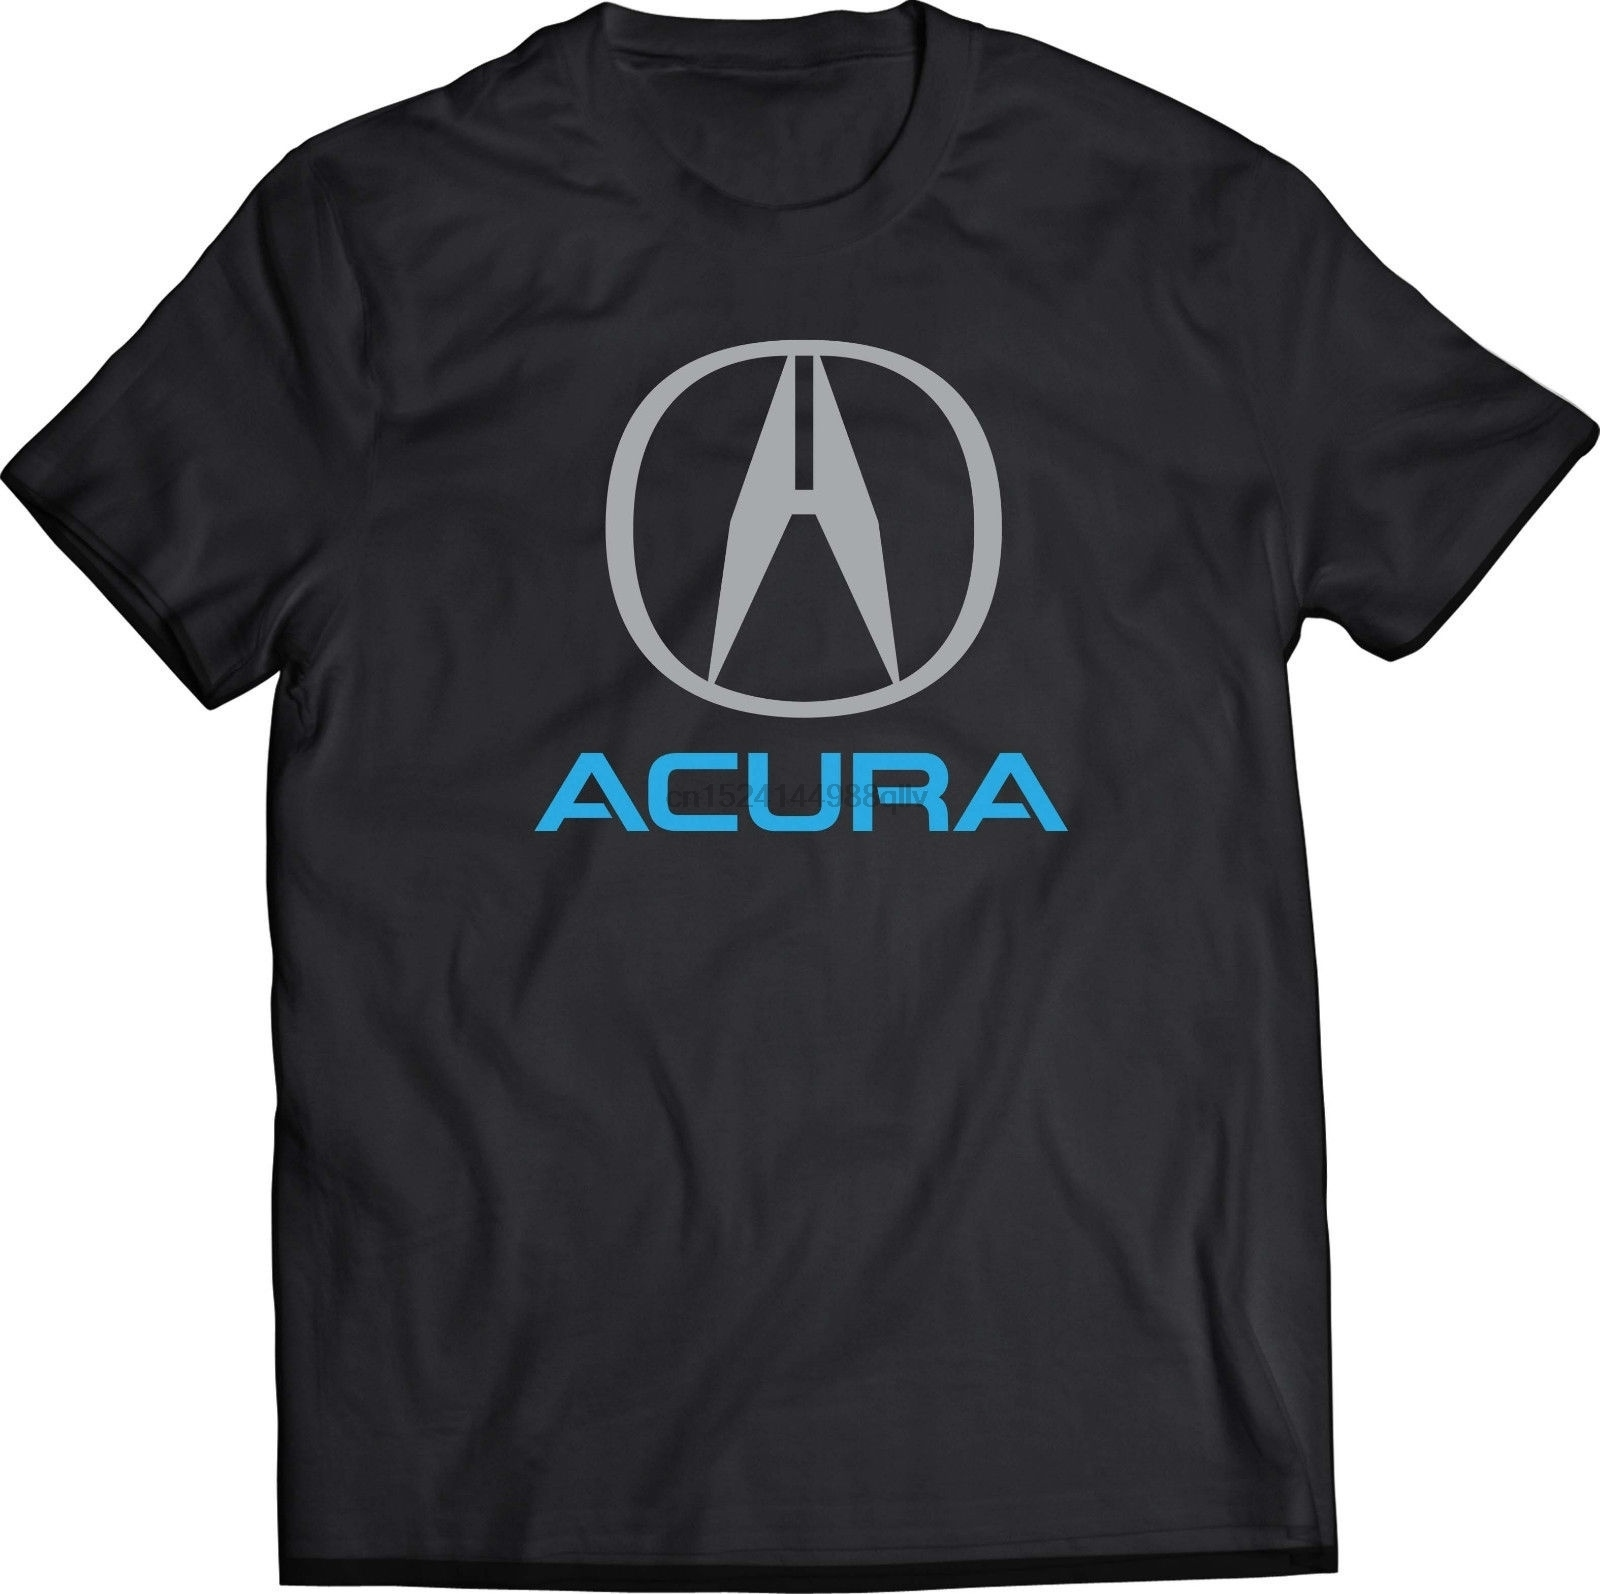 ACURA Black T Shirt Mens Round Neck Short Sleeves Cotton